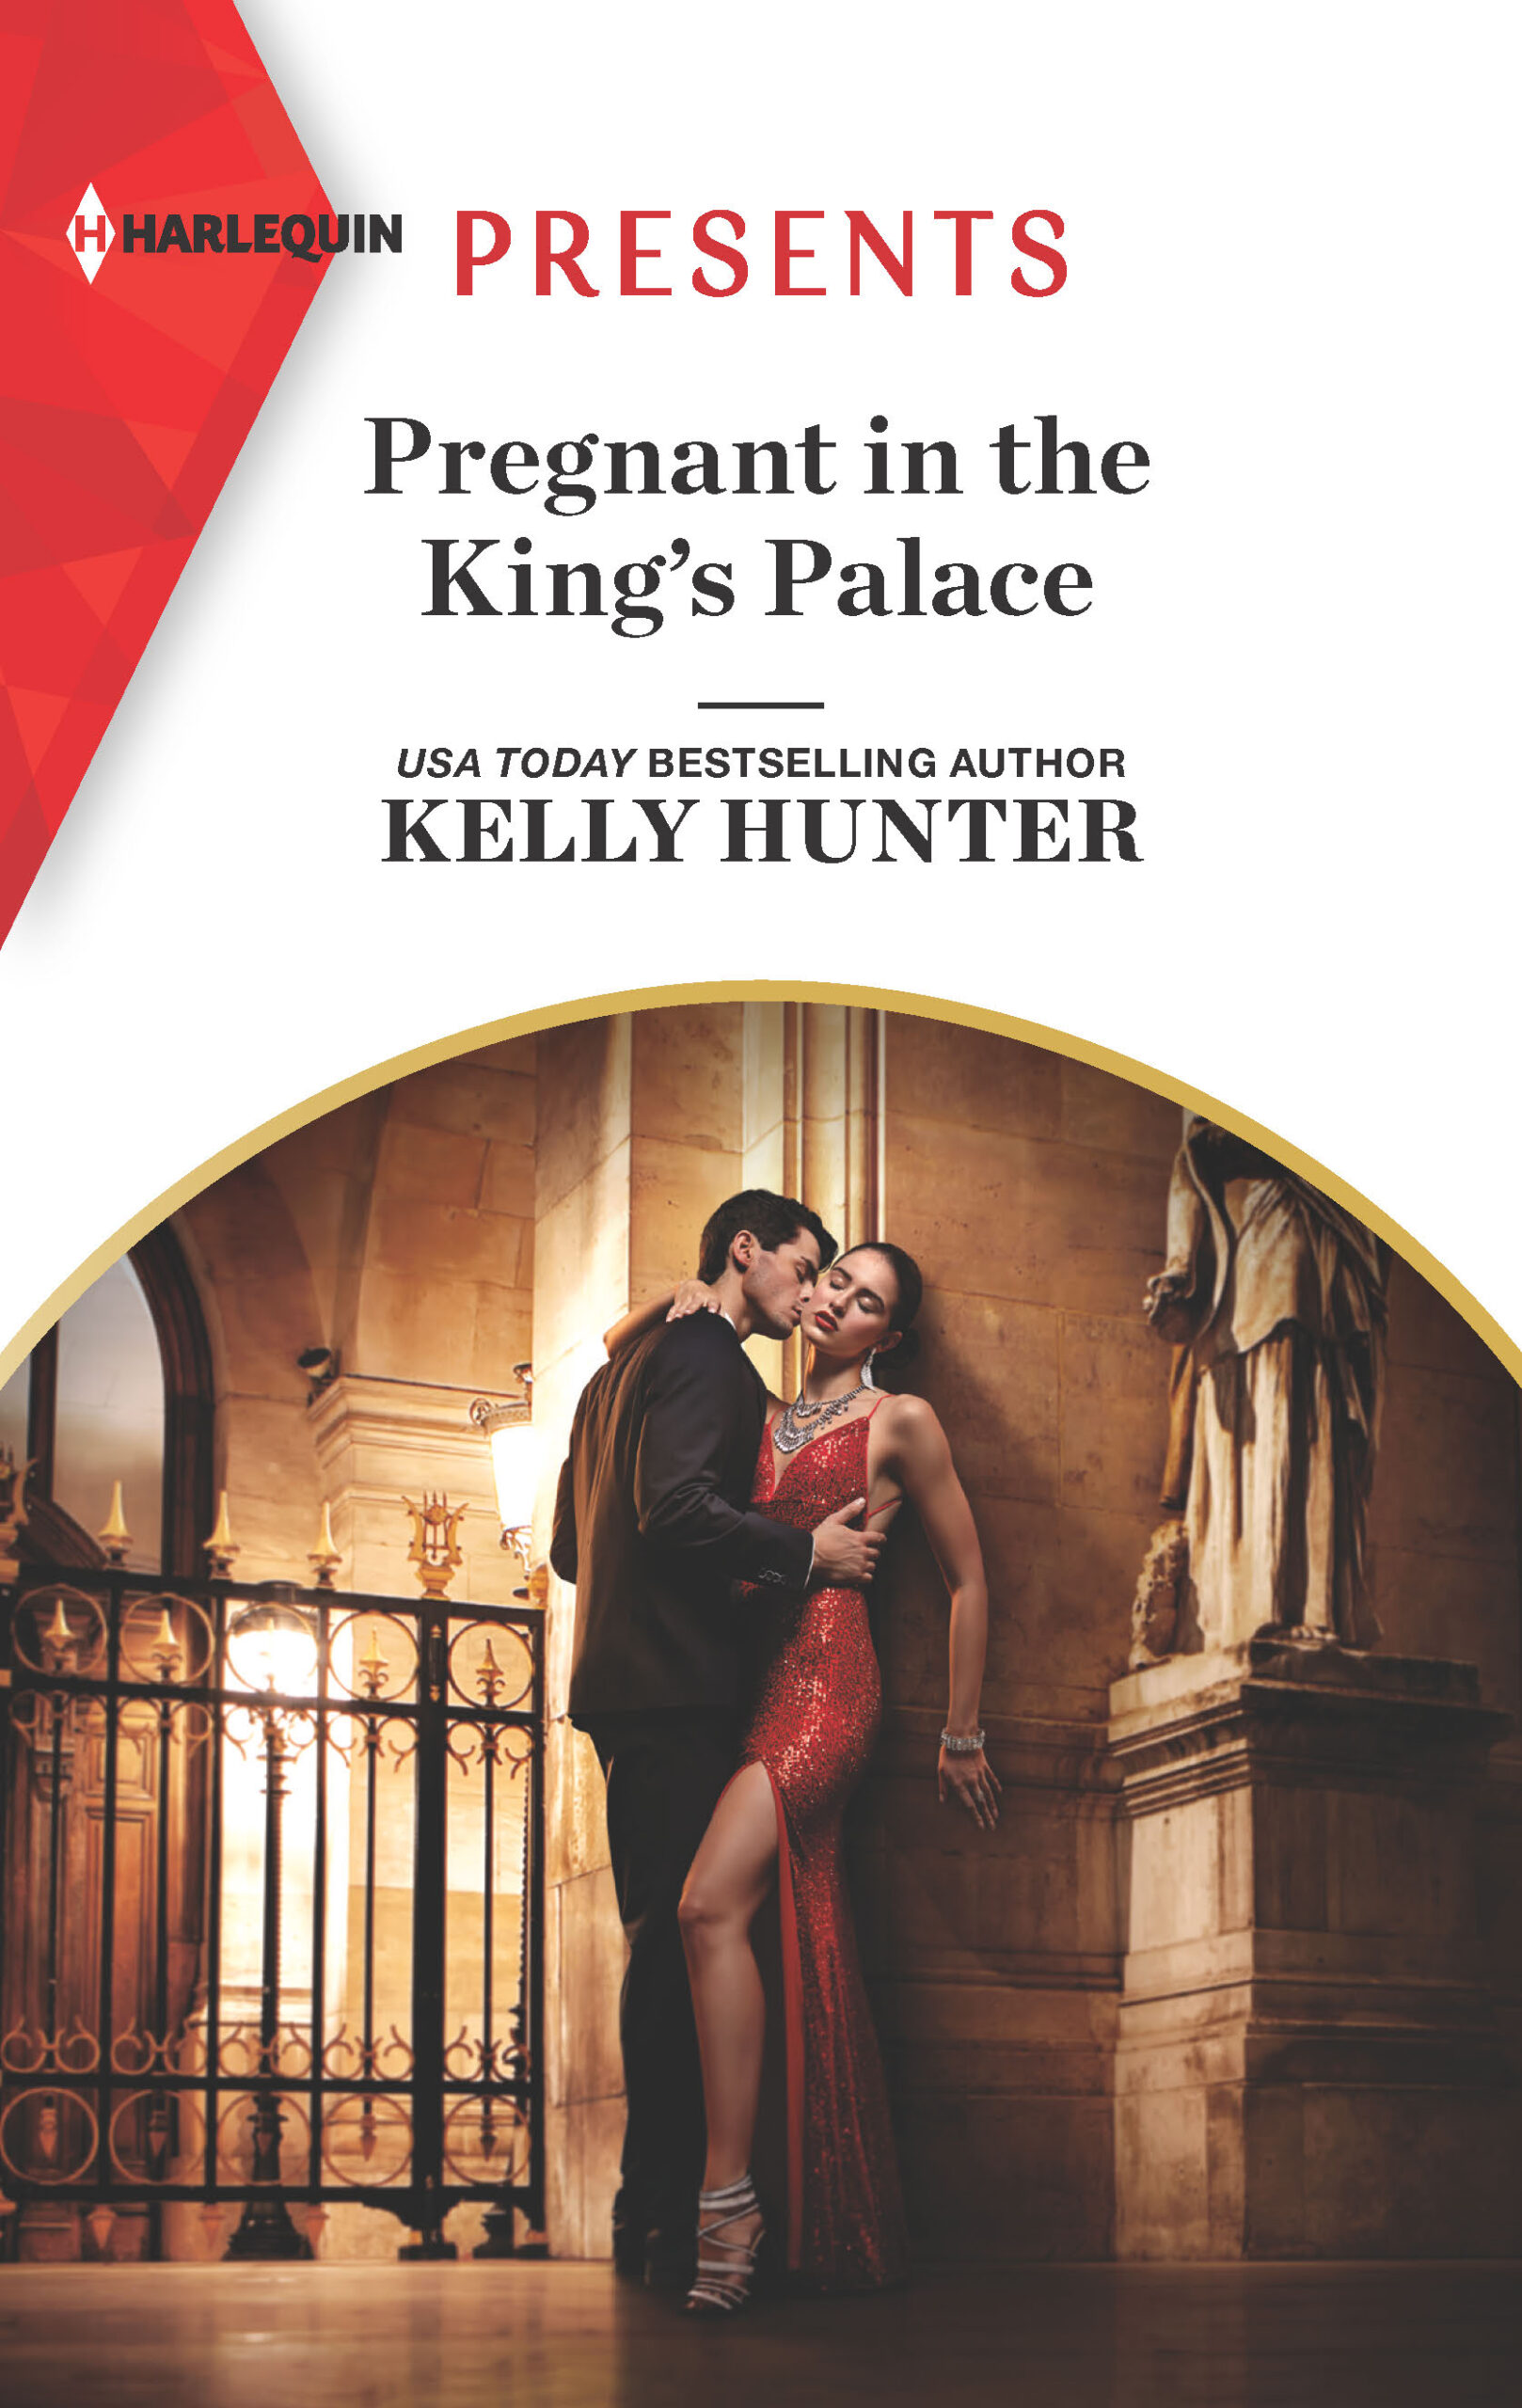 Pregnant in the King's Palace by Kelly Hunter